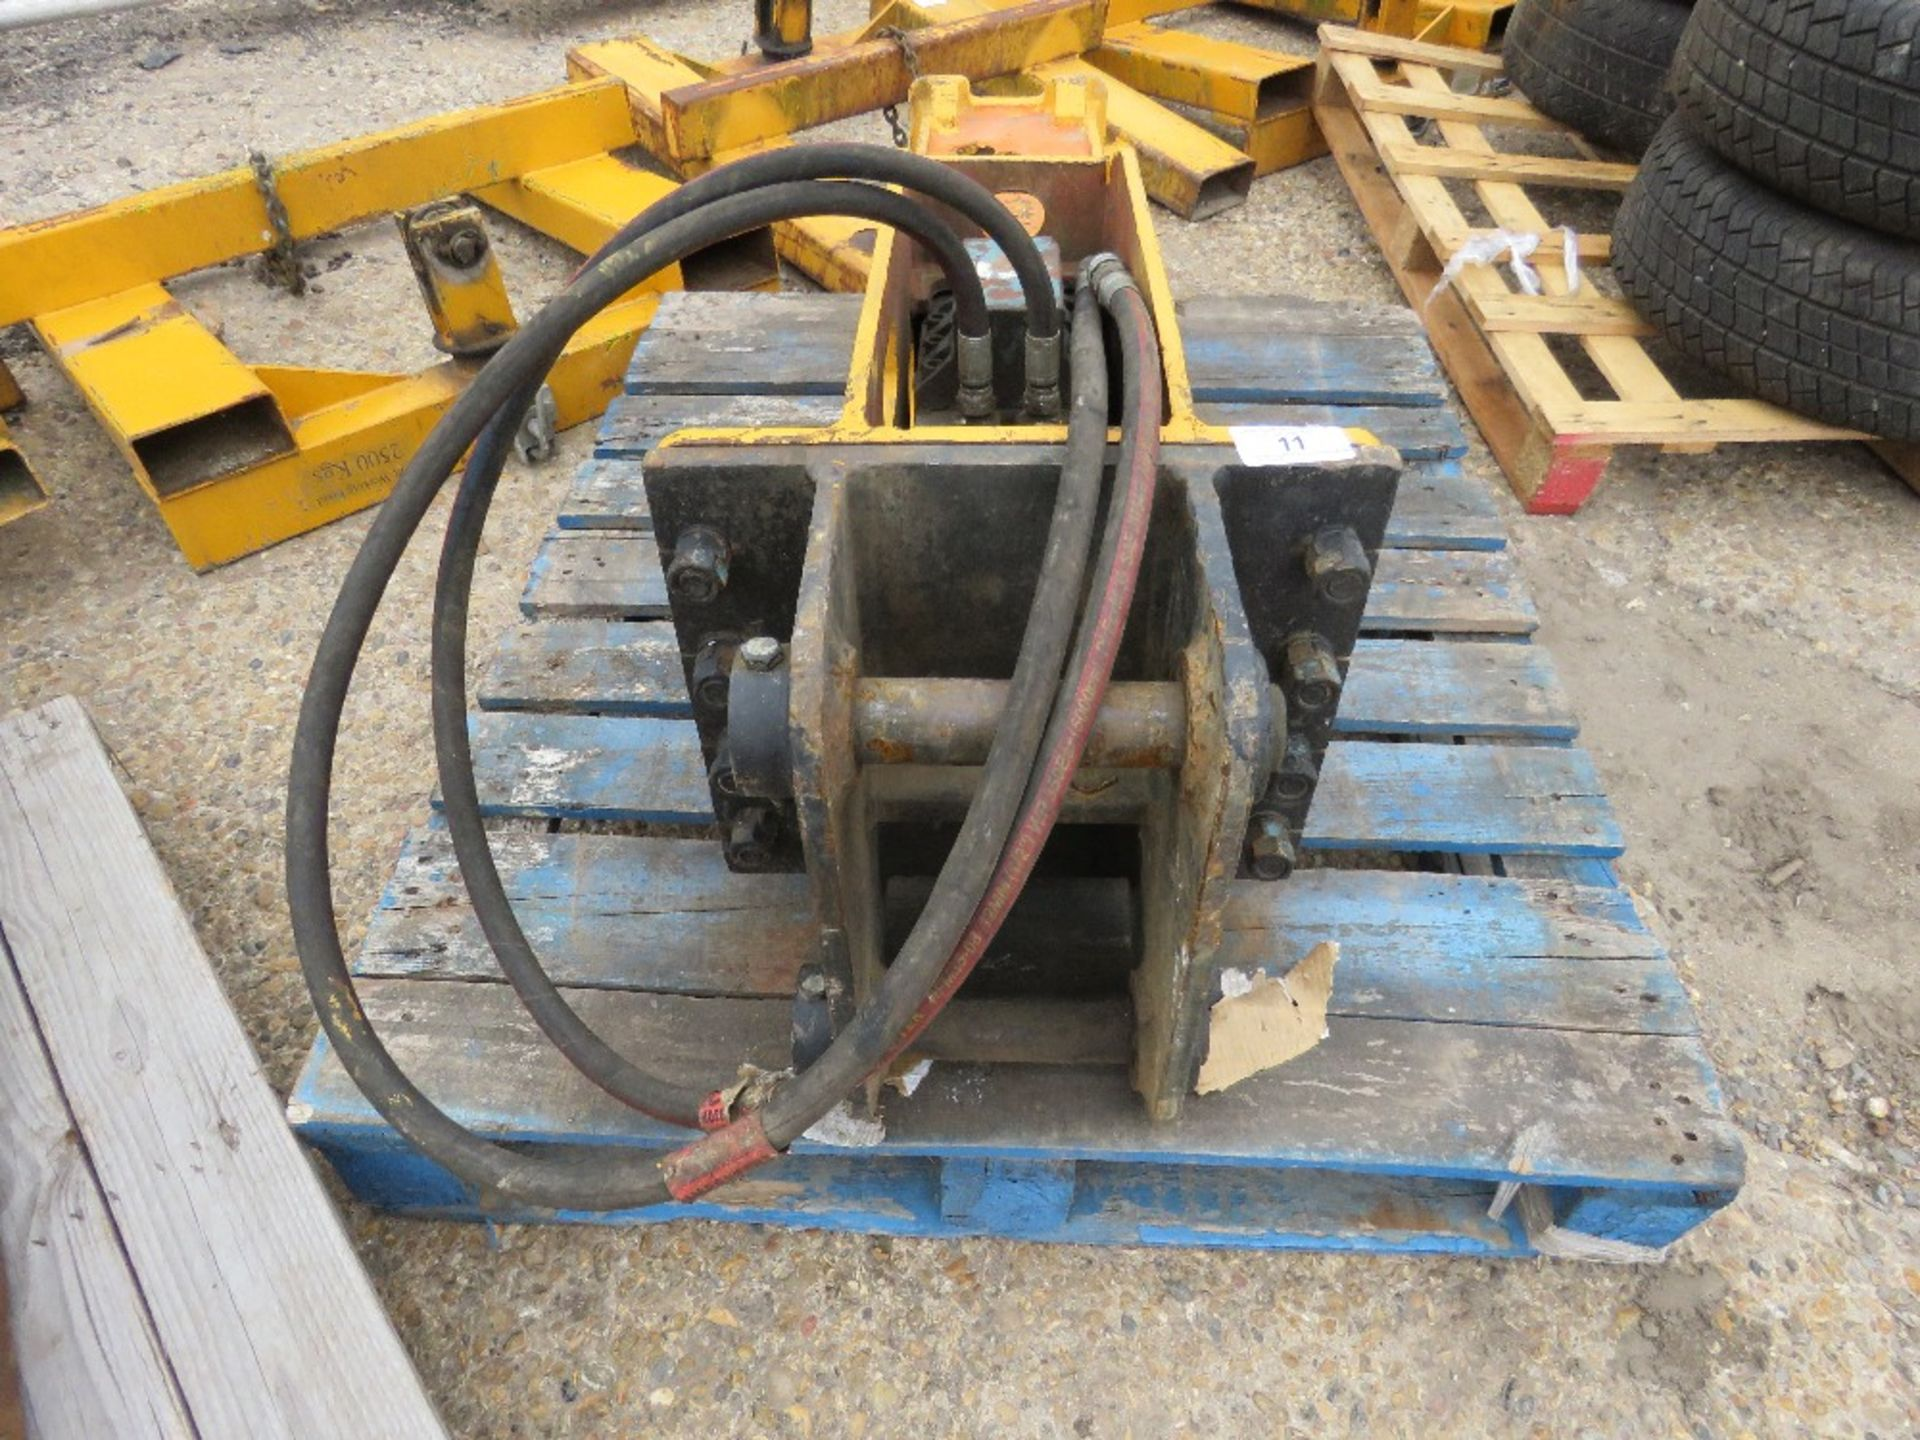 Lot 11 - DEMO LMBS 500 EXCAVATOR BREAKER ON 45MM PINS. DIRECT EX LOCAL COMPANY. DESCRIBED AS WORKING BUT WOUL